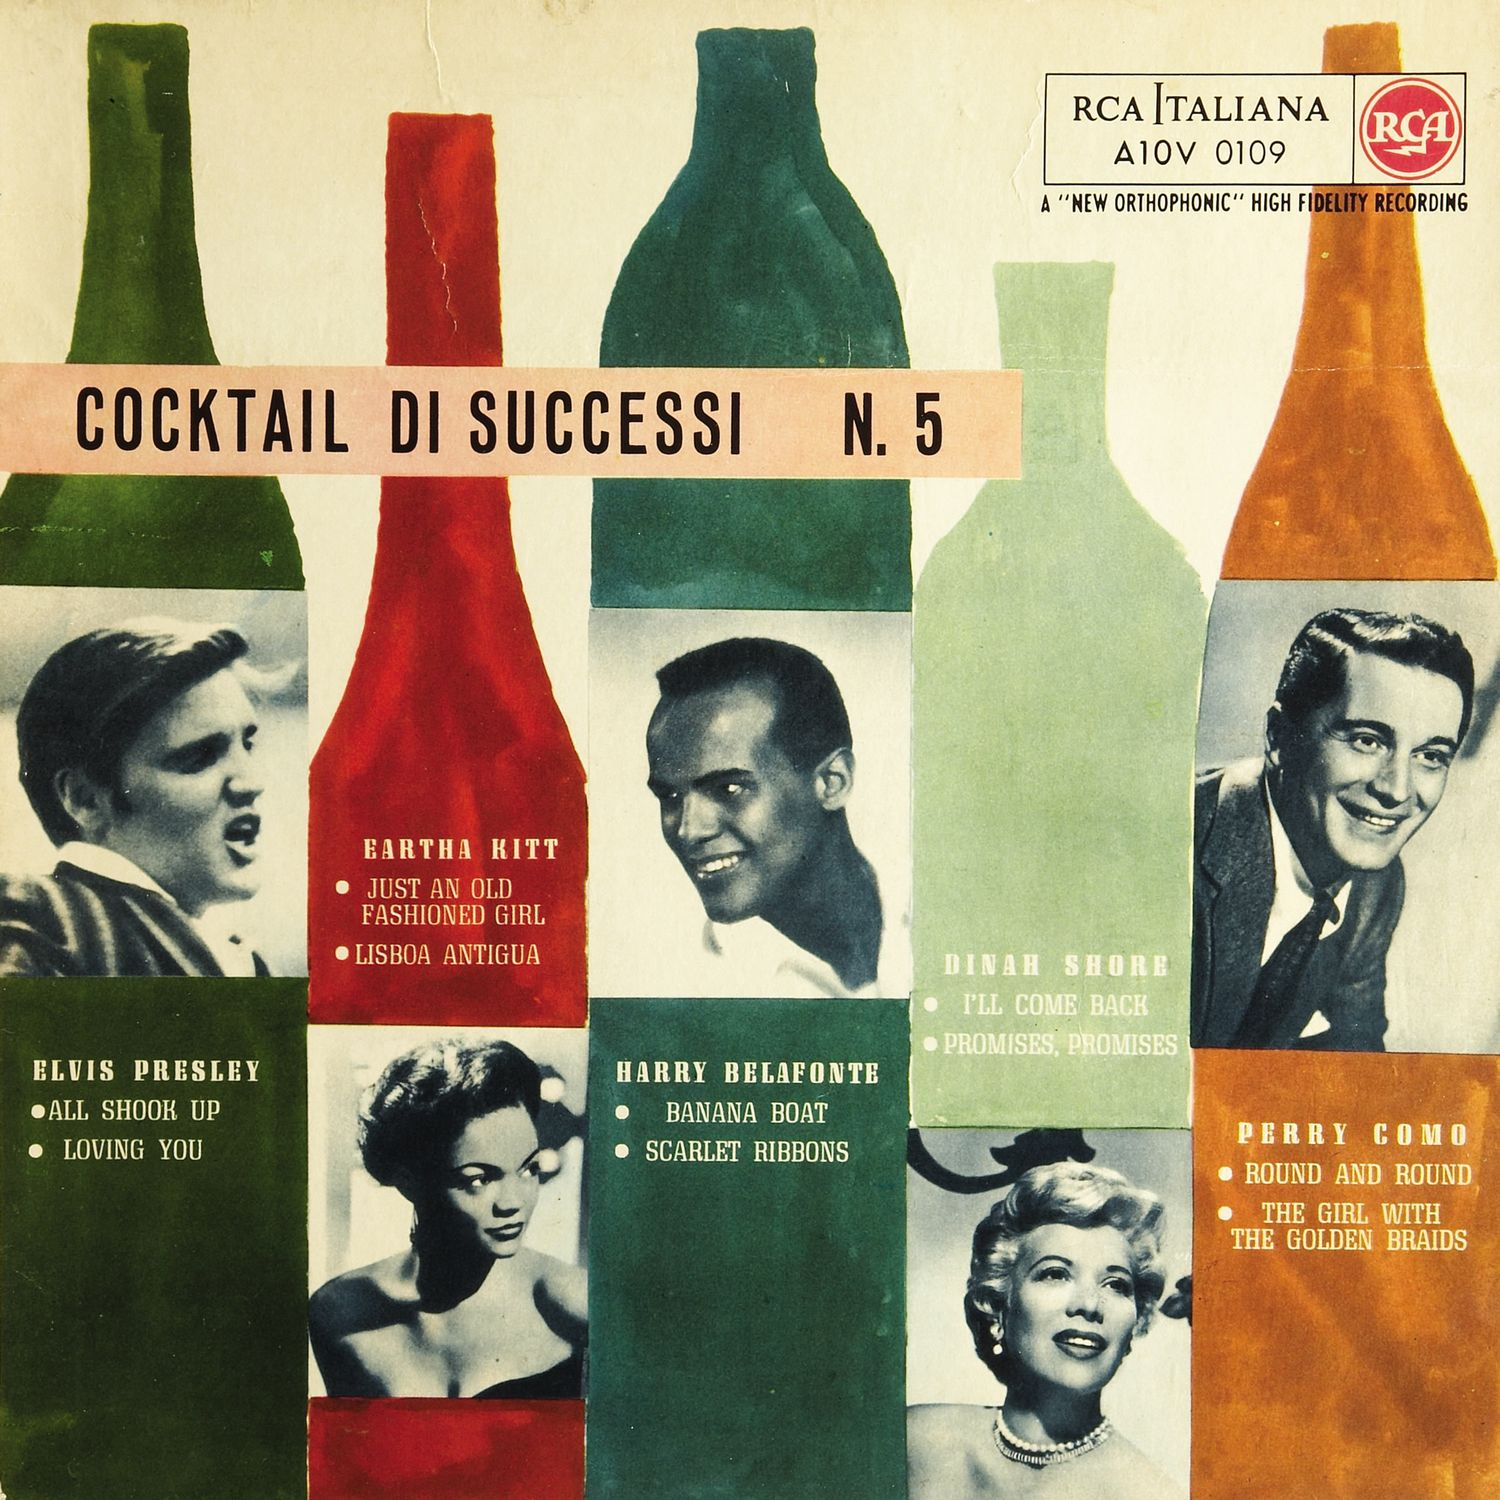 Cocktail Di Successi N. 5 (A10V 0109, Italy, 1957, 10 inch)